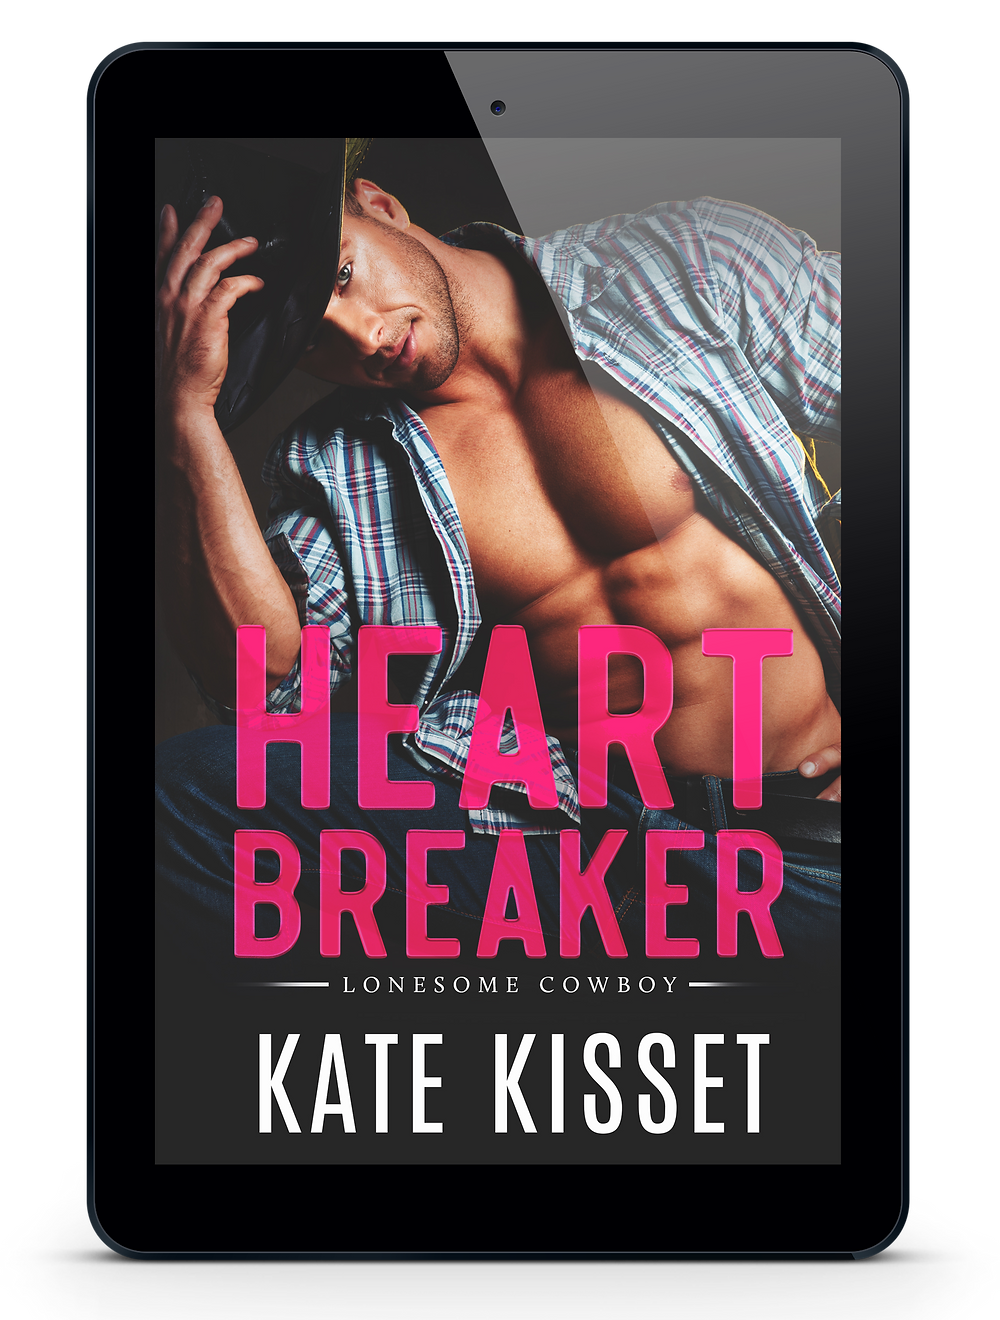 Kate Kisset, Heartbreaker, Limited 99 cent release (8/20/2019)